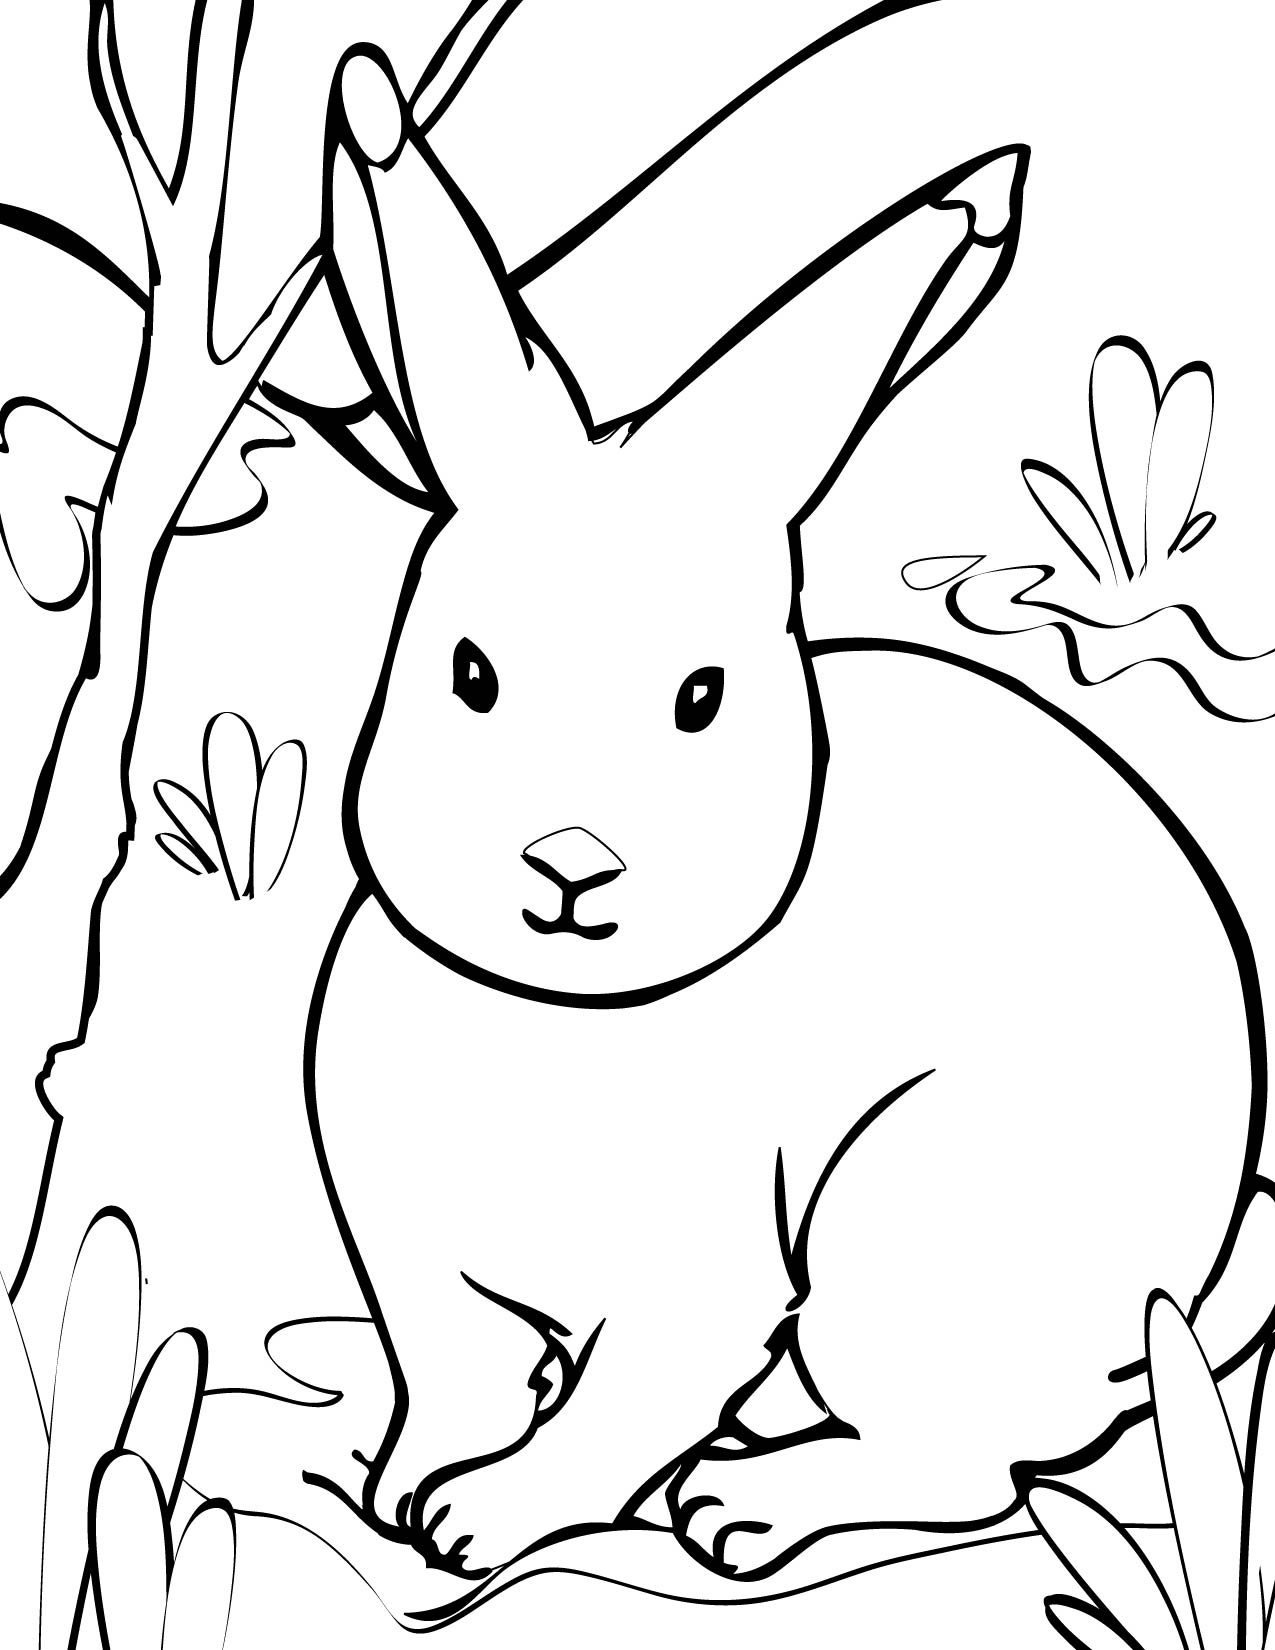 arctic animal coloring pages tundra animals drawing at getdrawings free download arctic pages animal coloring